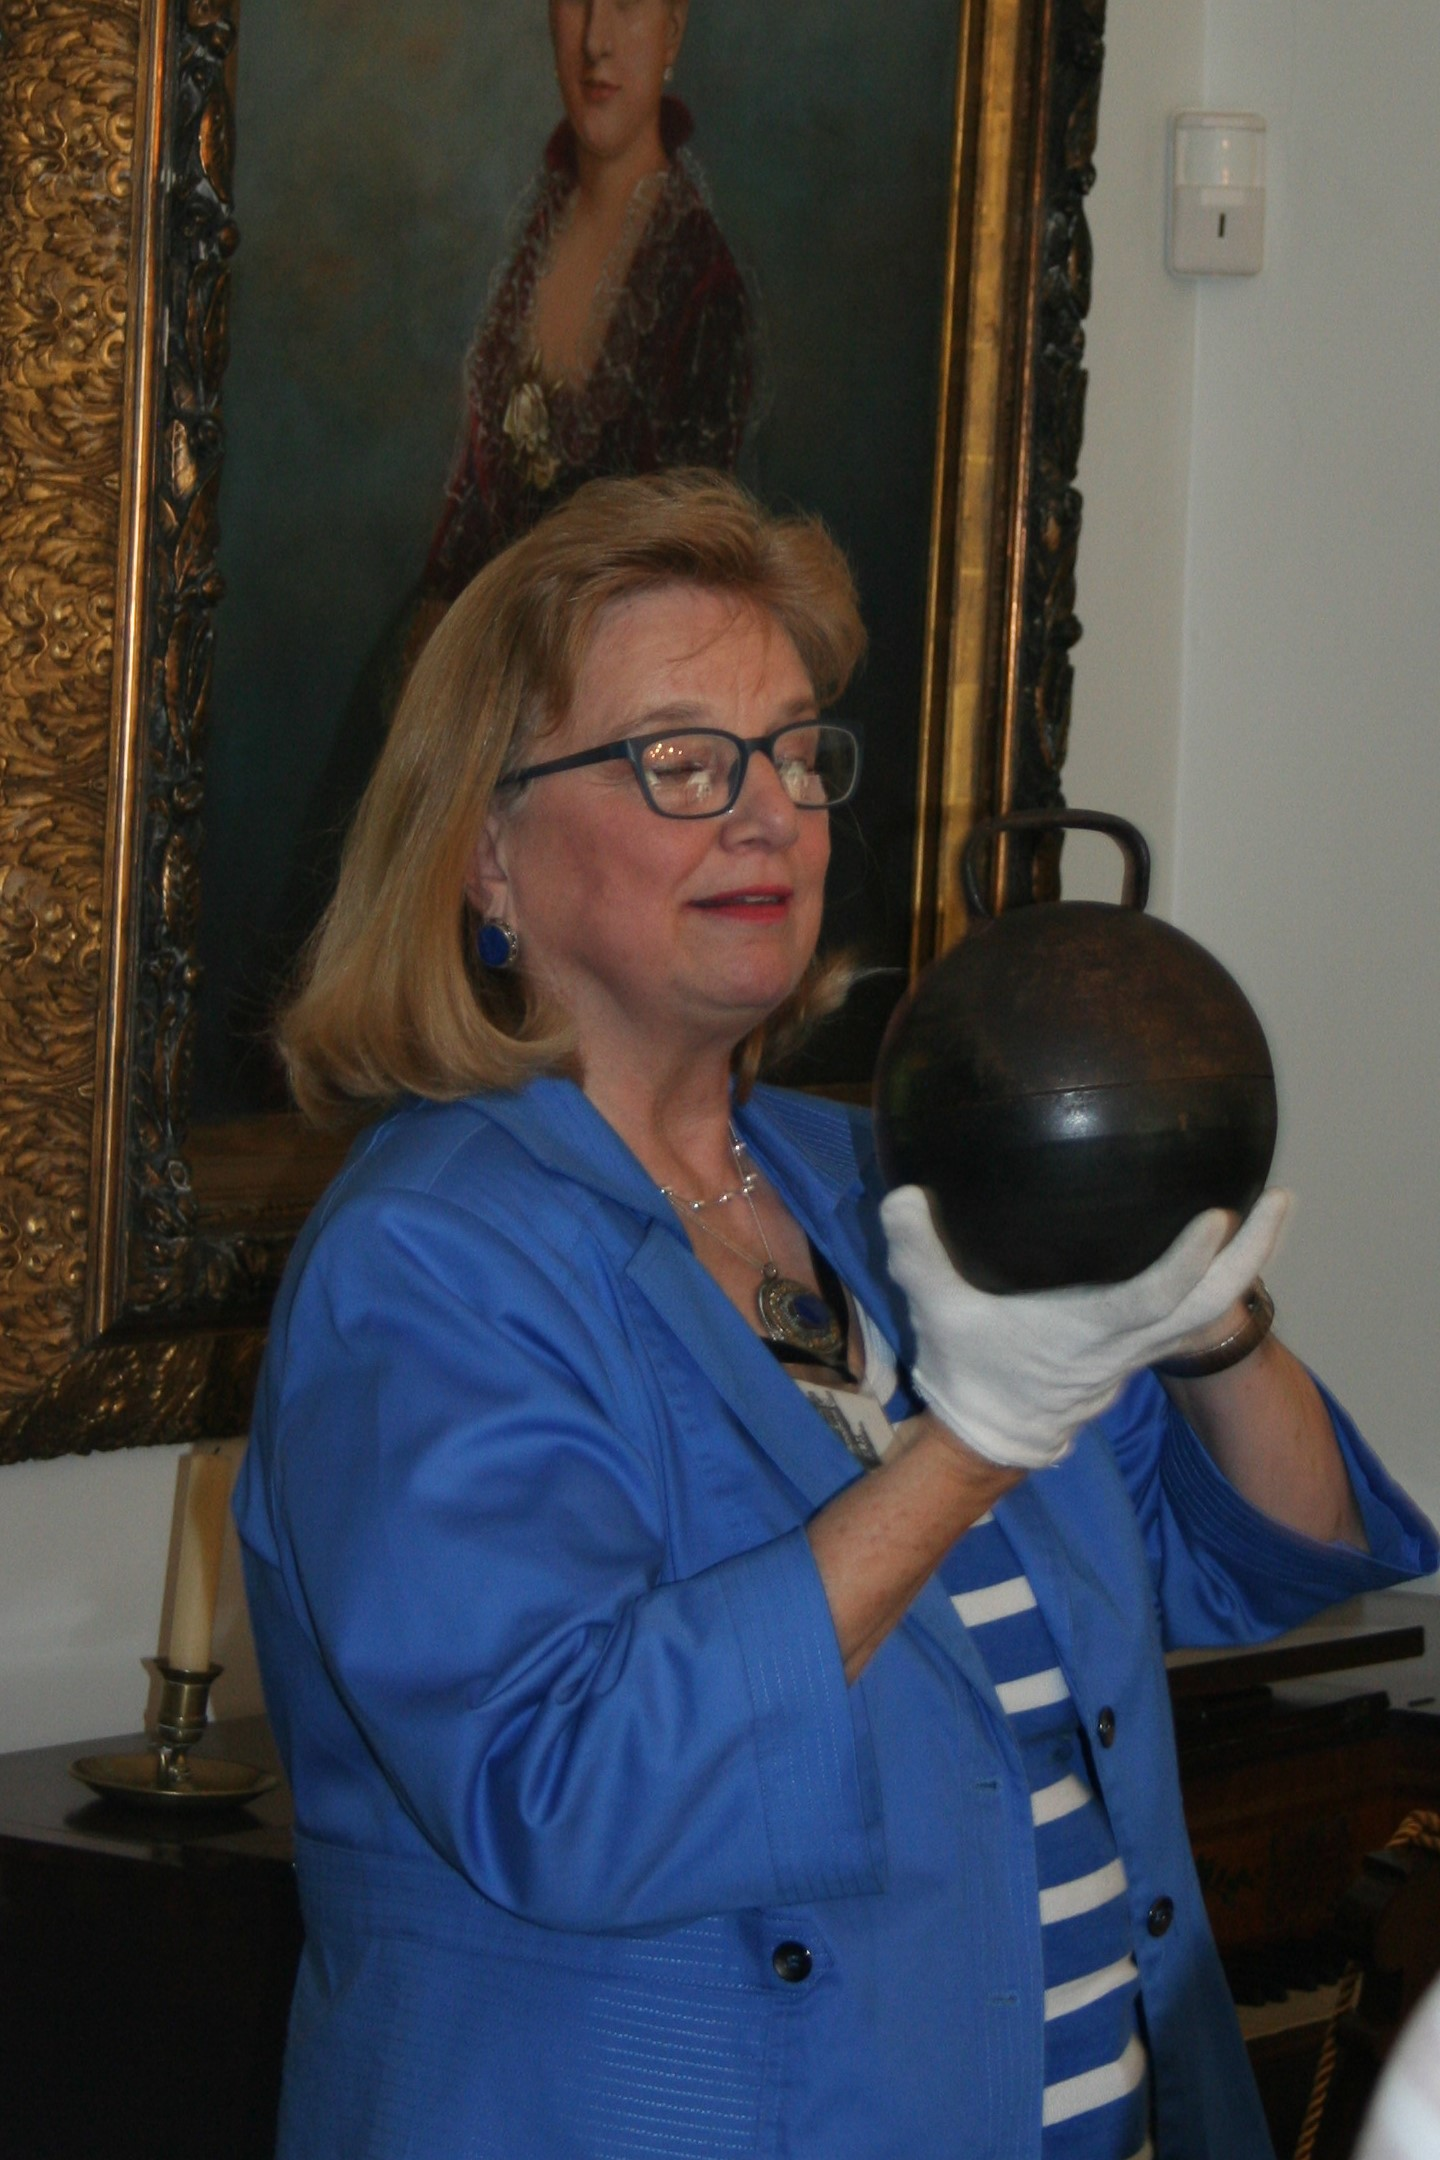 A volunteer docent is shown during our tour of Duncan Tavern